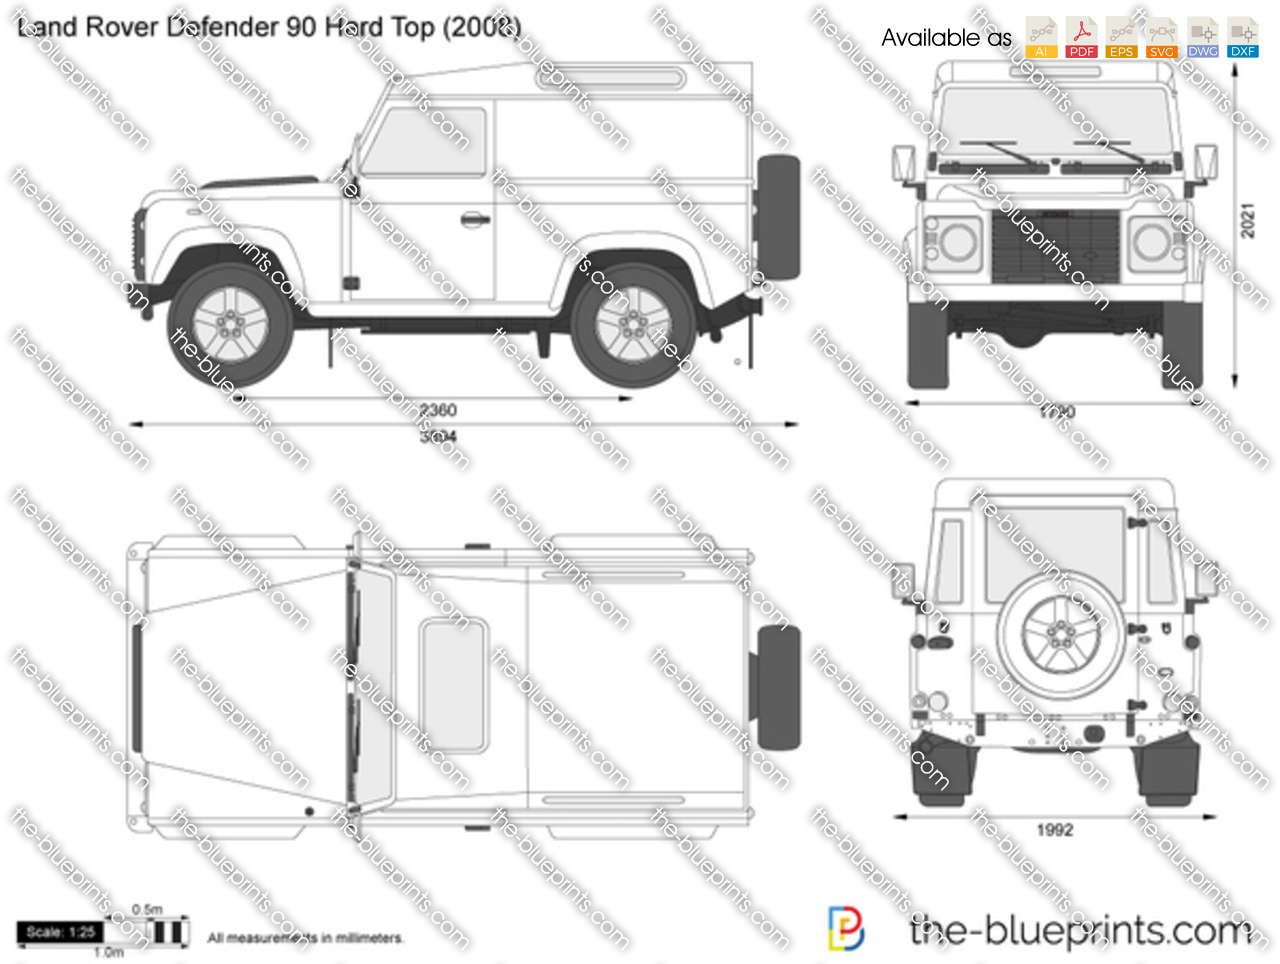 Land Rover Defender 90 Hard Top 1996